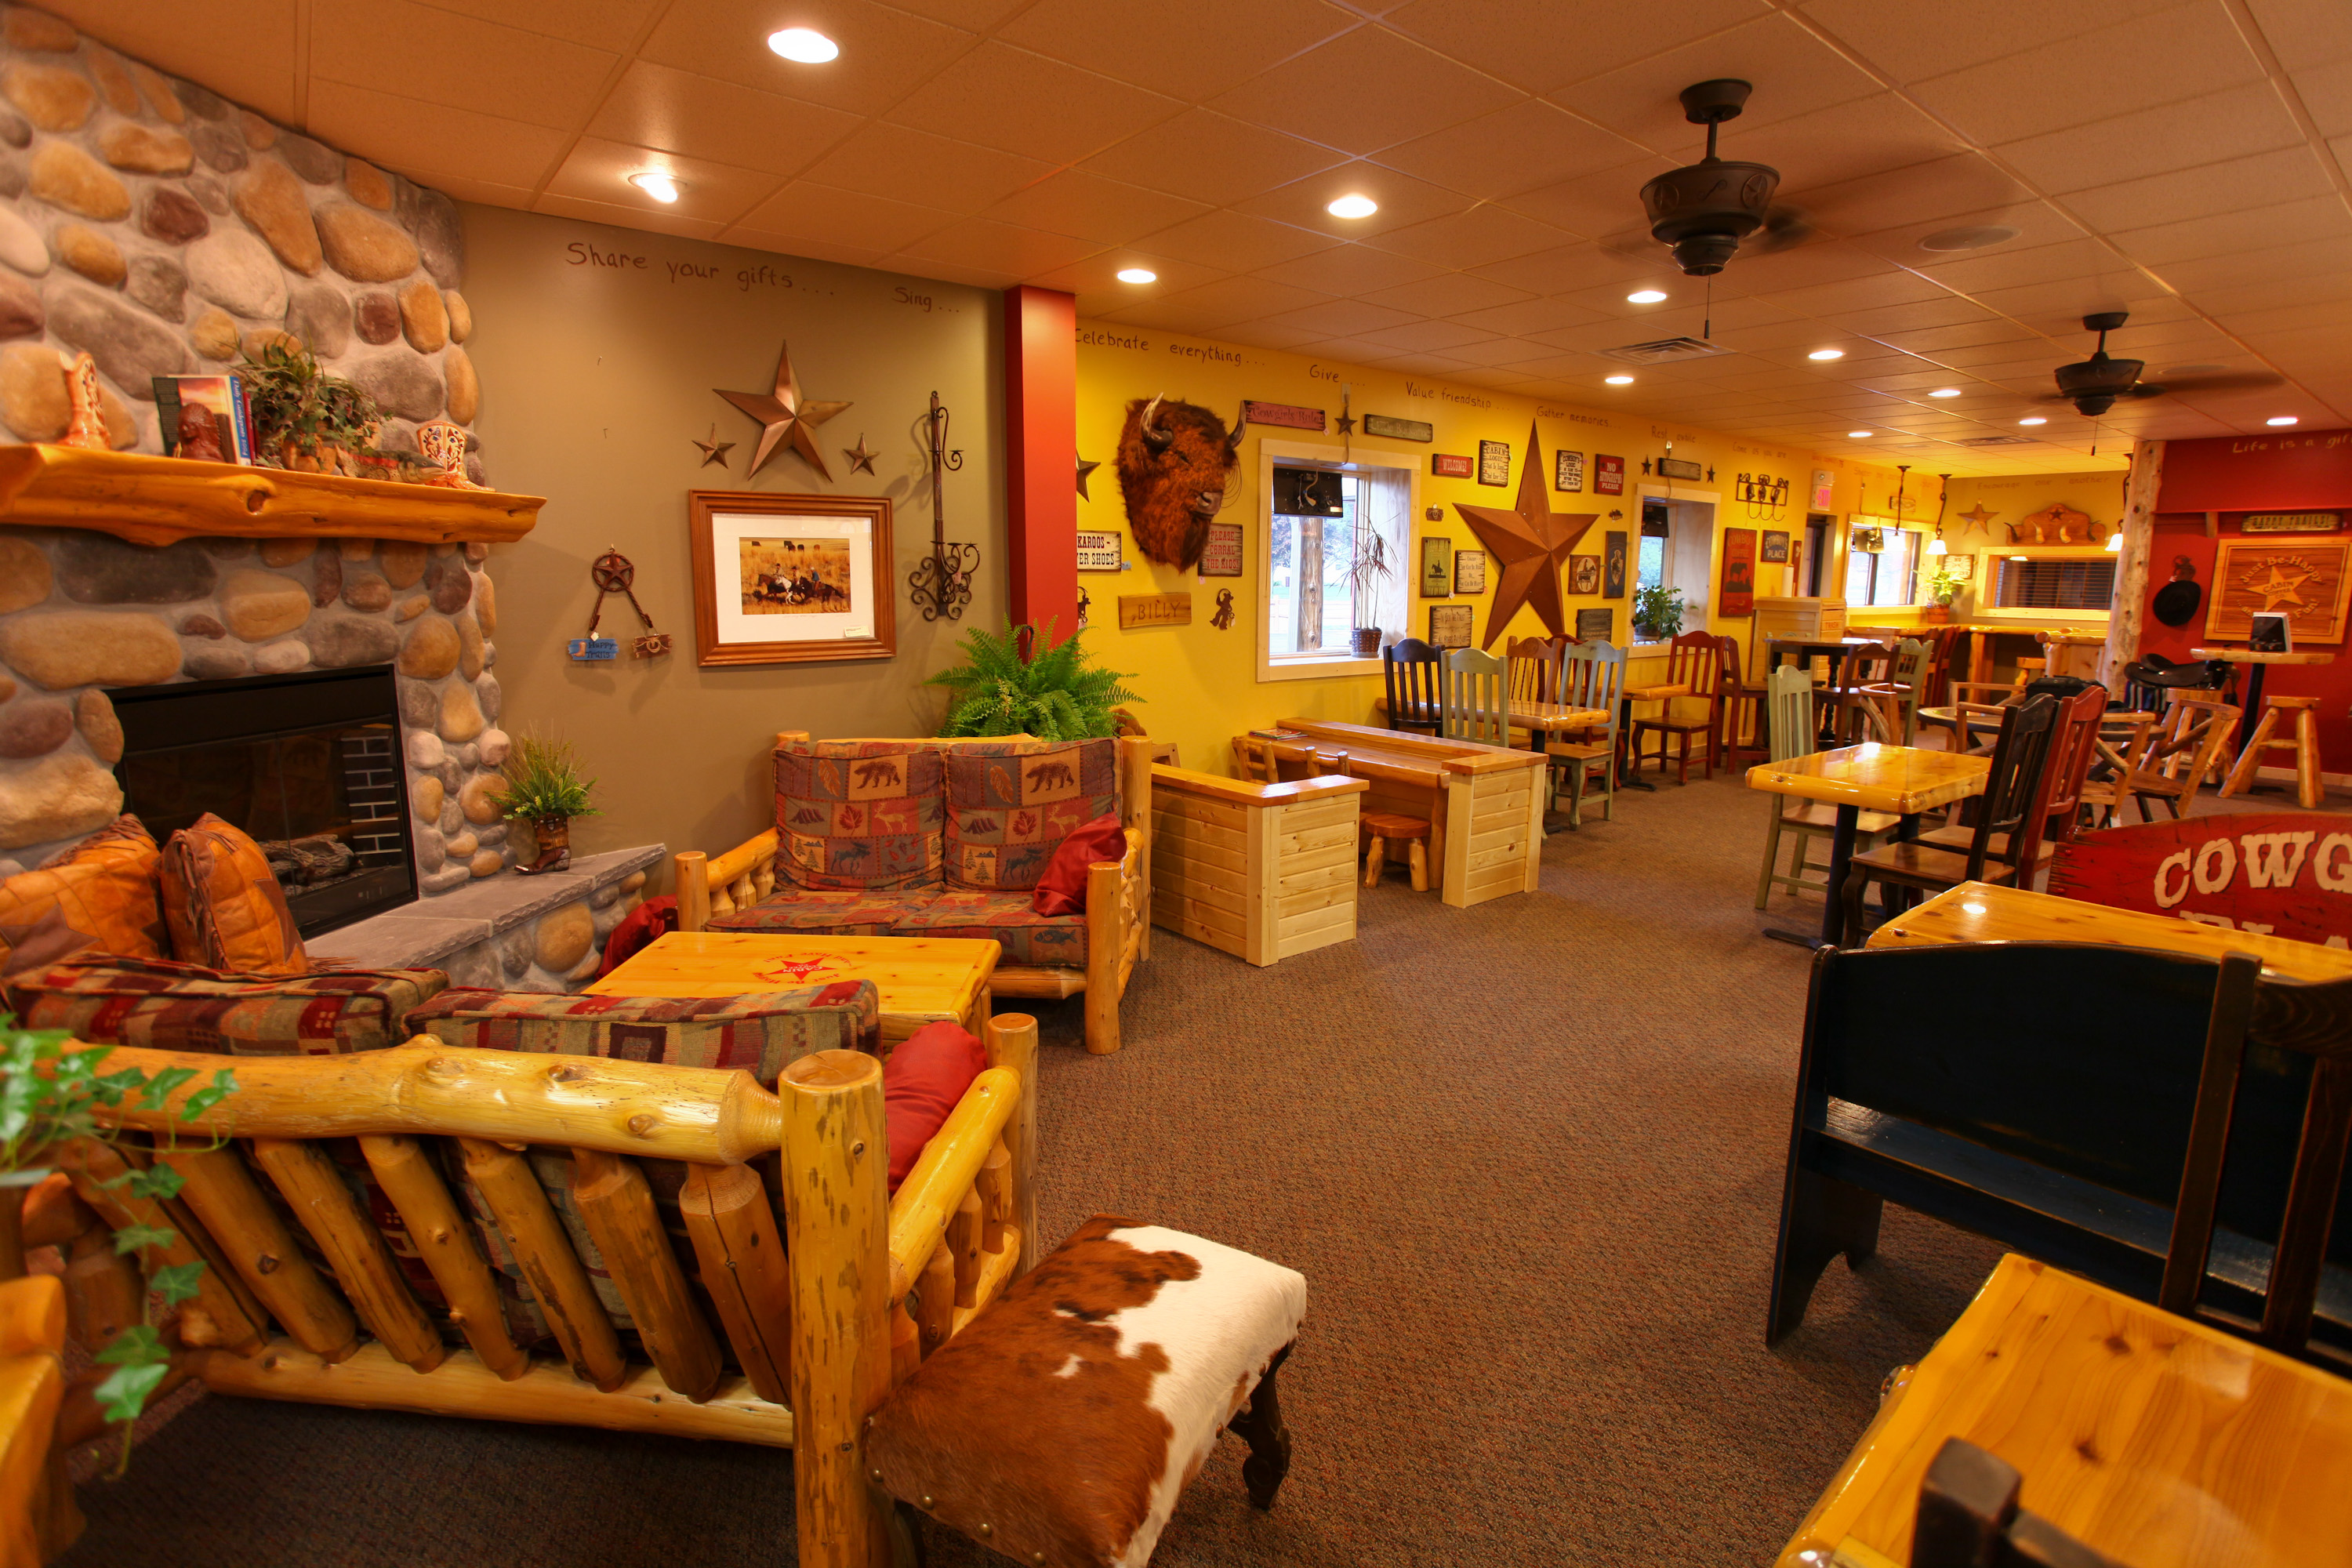 Do you see Billy our bison hanging out on the wall?